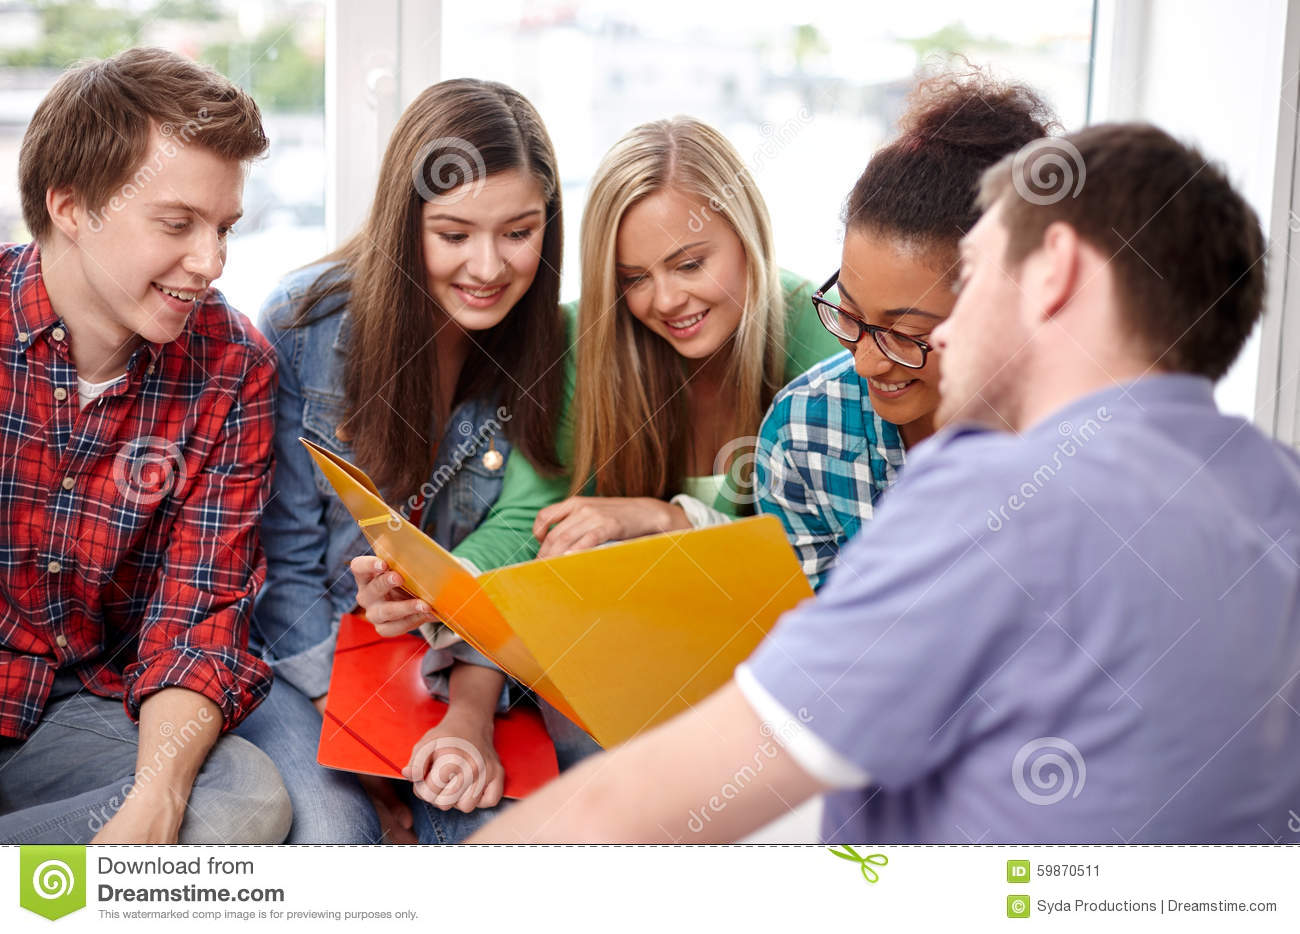 a happy occasion in school Find happy occasion stock images in hd and millions of other royalty-free stock photos, illustrations, and vectors in the shutterstock collection thousands of new, high-quality pictures added every day.